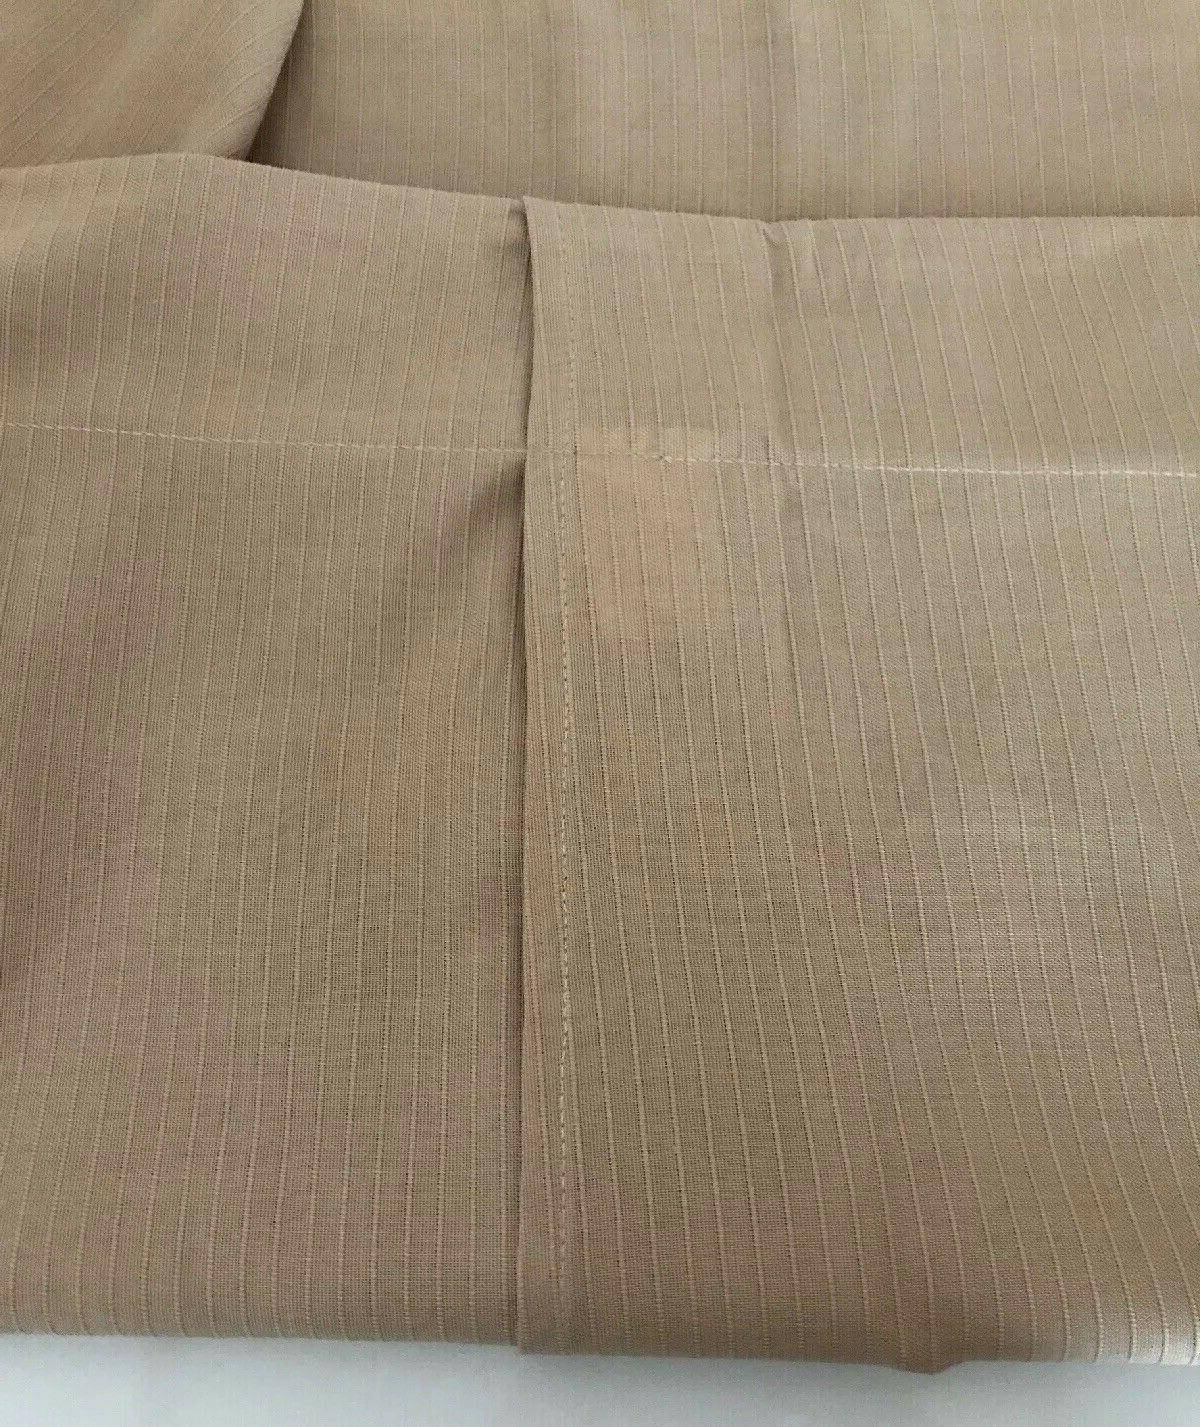 King Size Pillow Polyester Cotton Solid Tan Ribbed